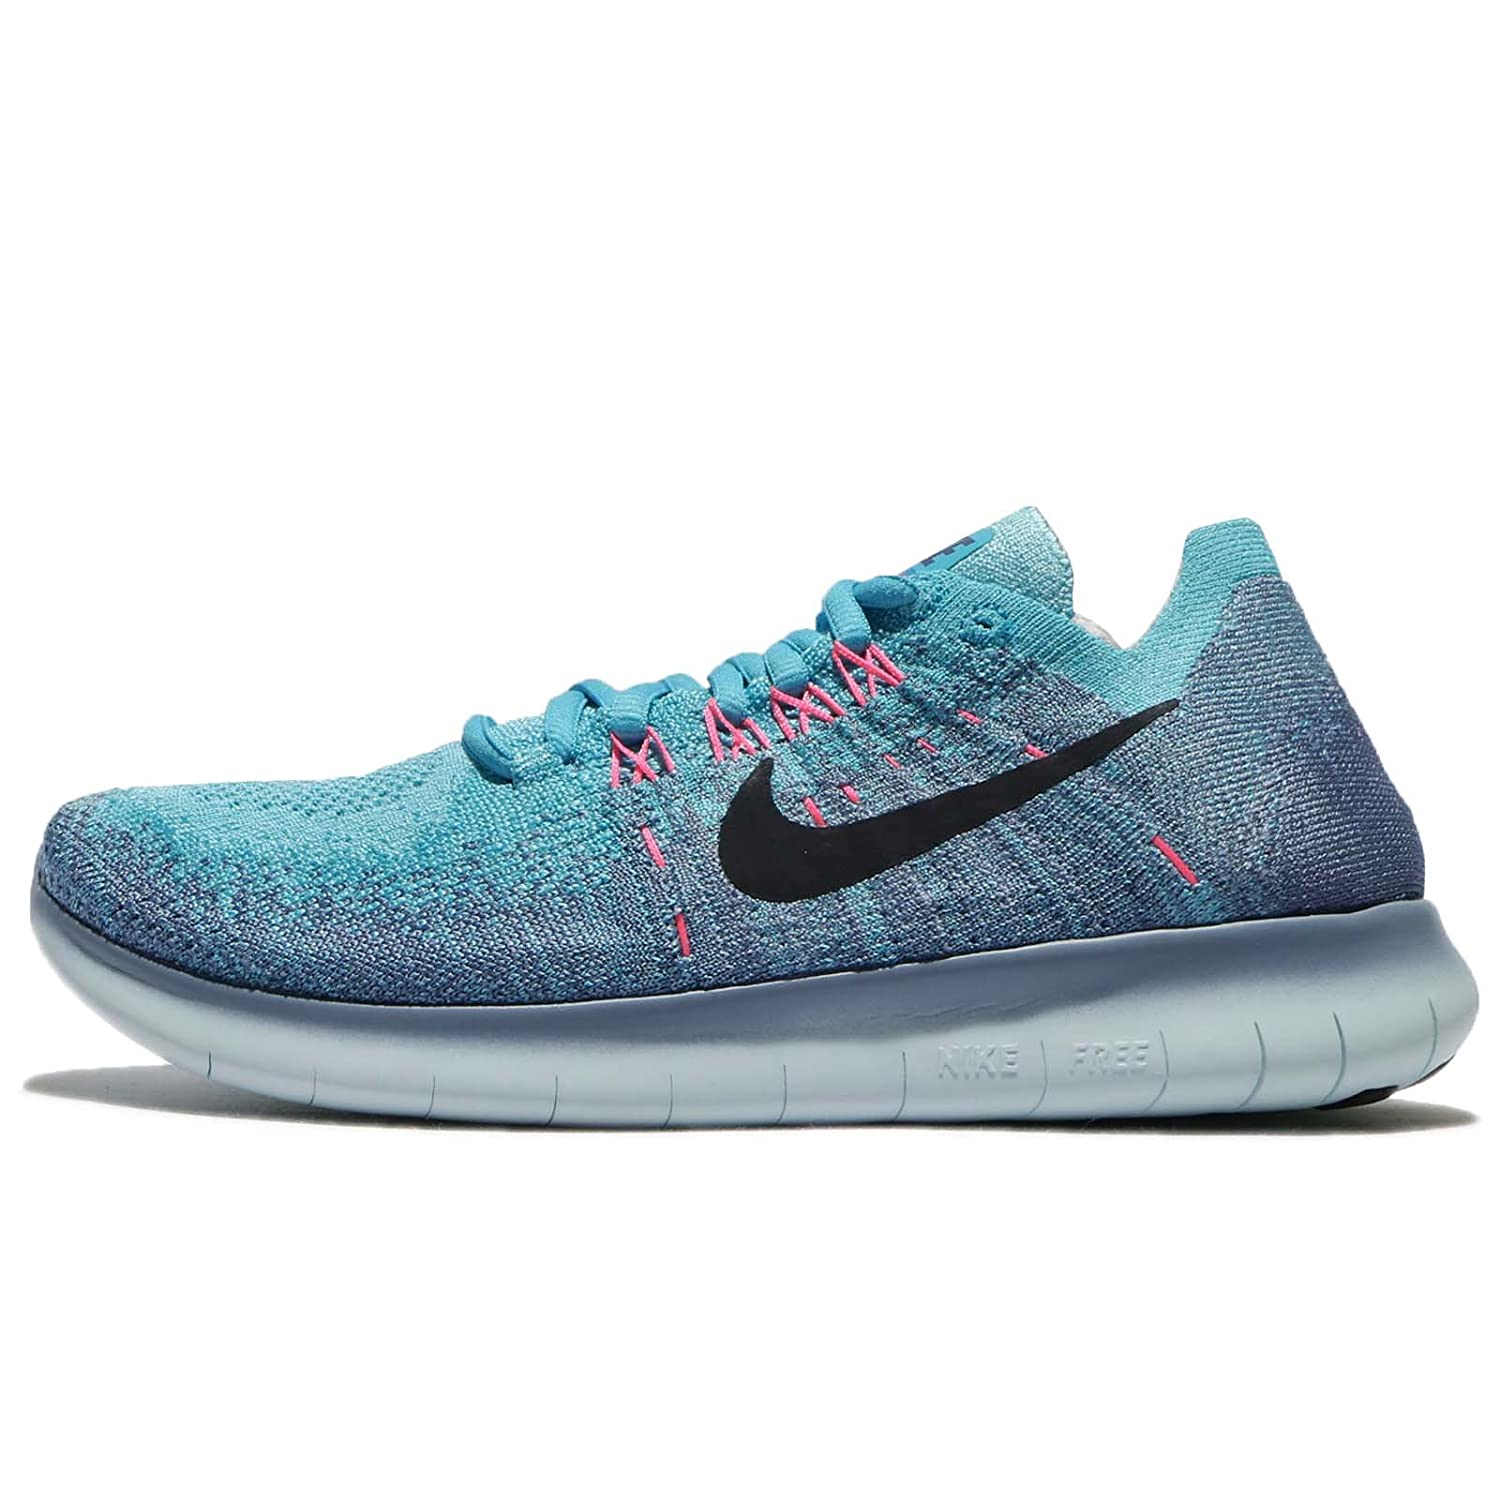 newest 20cb4 e2e48 NIKE Womens Free RN Flyknit 2017 Running Shoe Work Blue/Dark  Obsidian-Chlorine Blue (7.5)